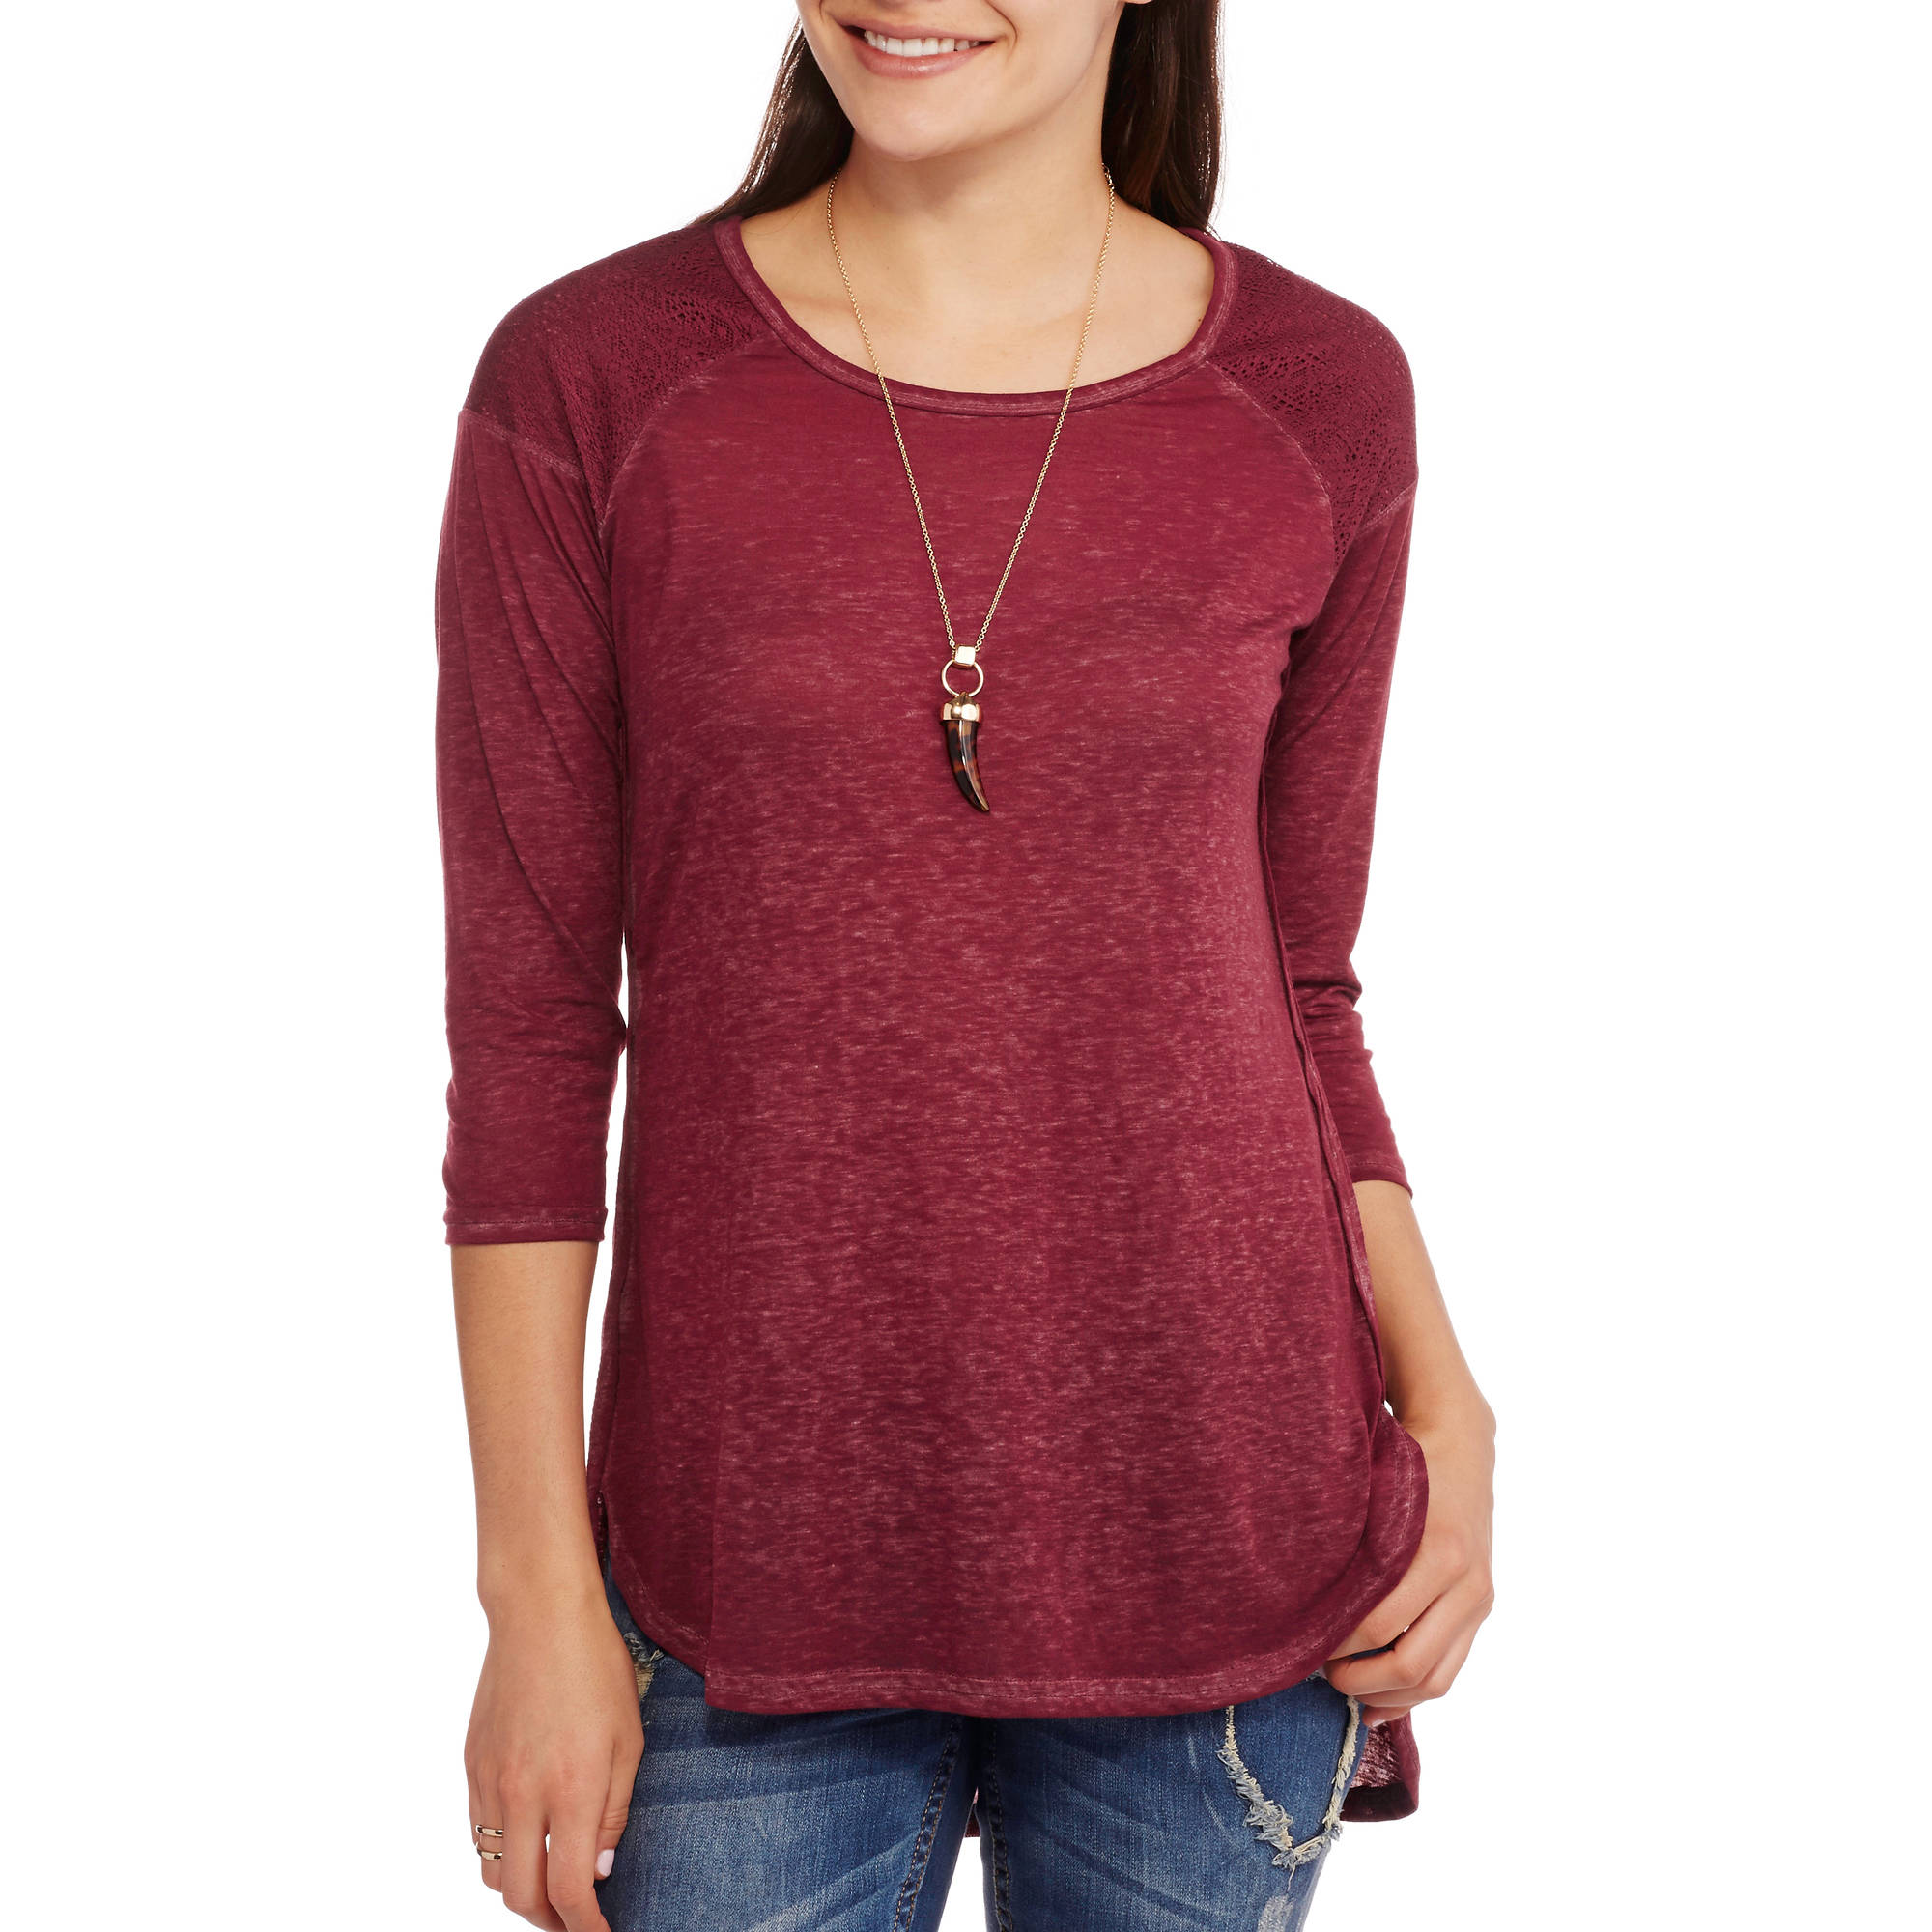 French Laundry Women's Textured Burnout Tunic Top